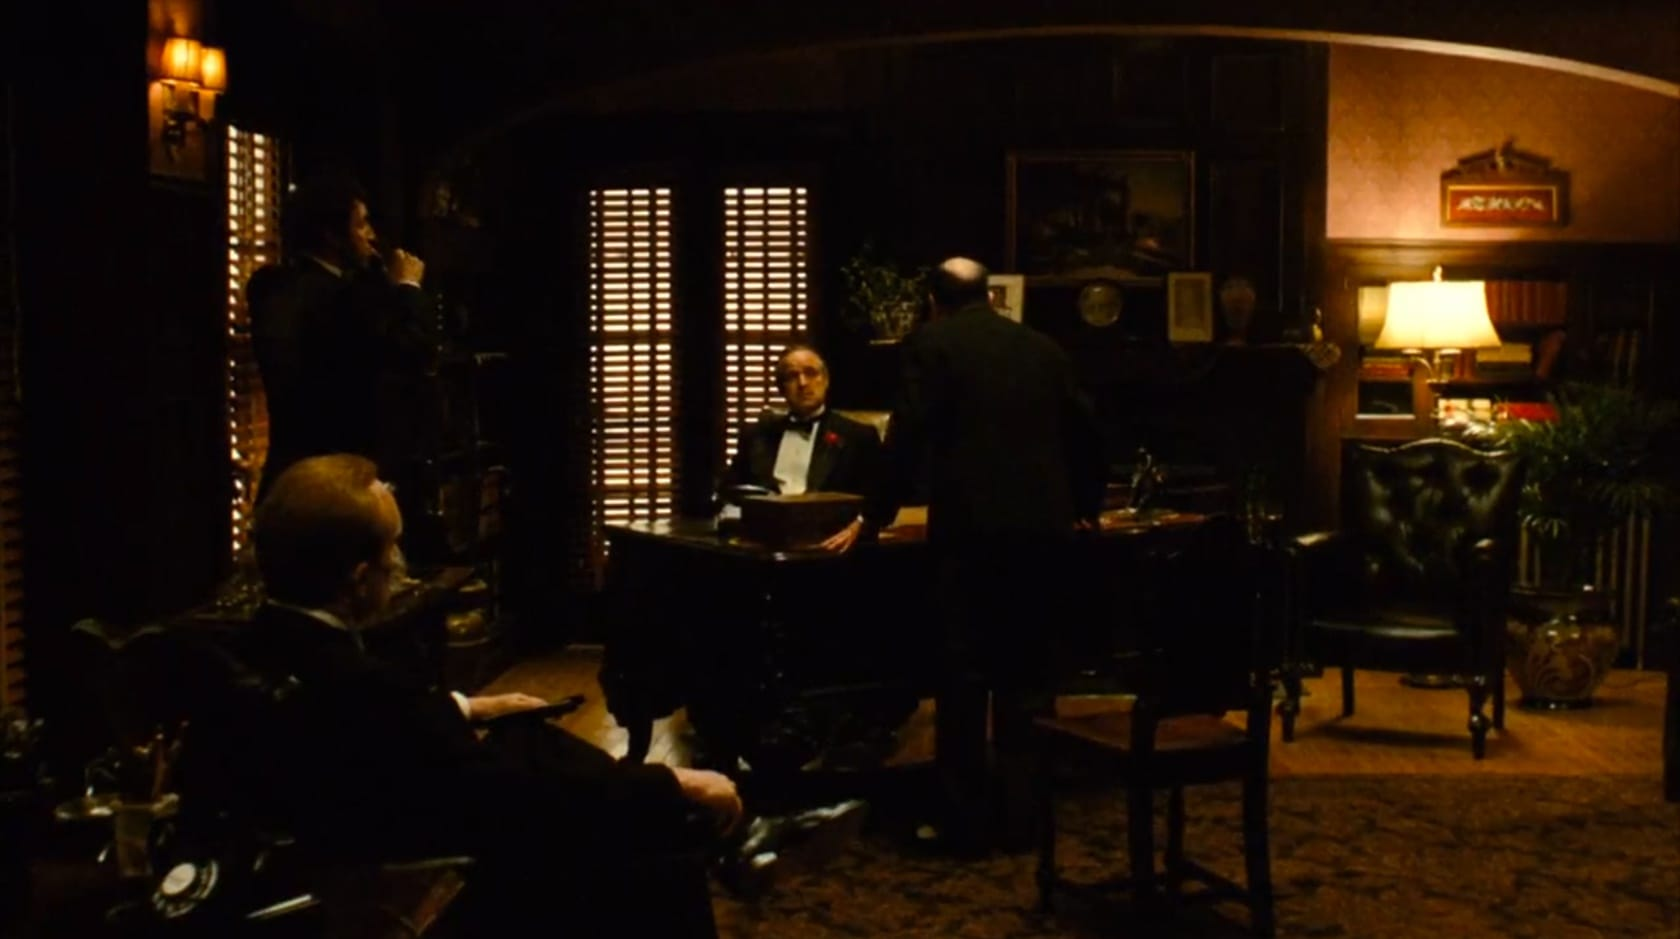 Talking Movies Inspired By Cinema The Godfather